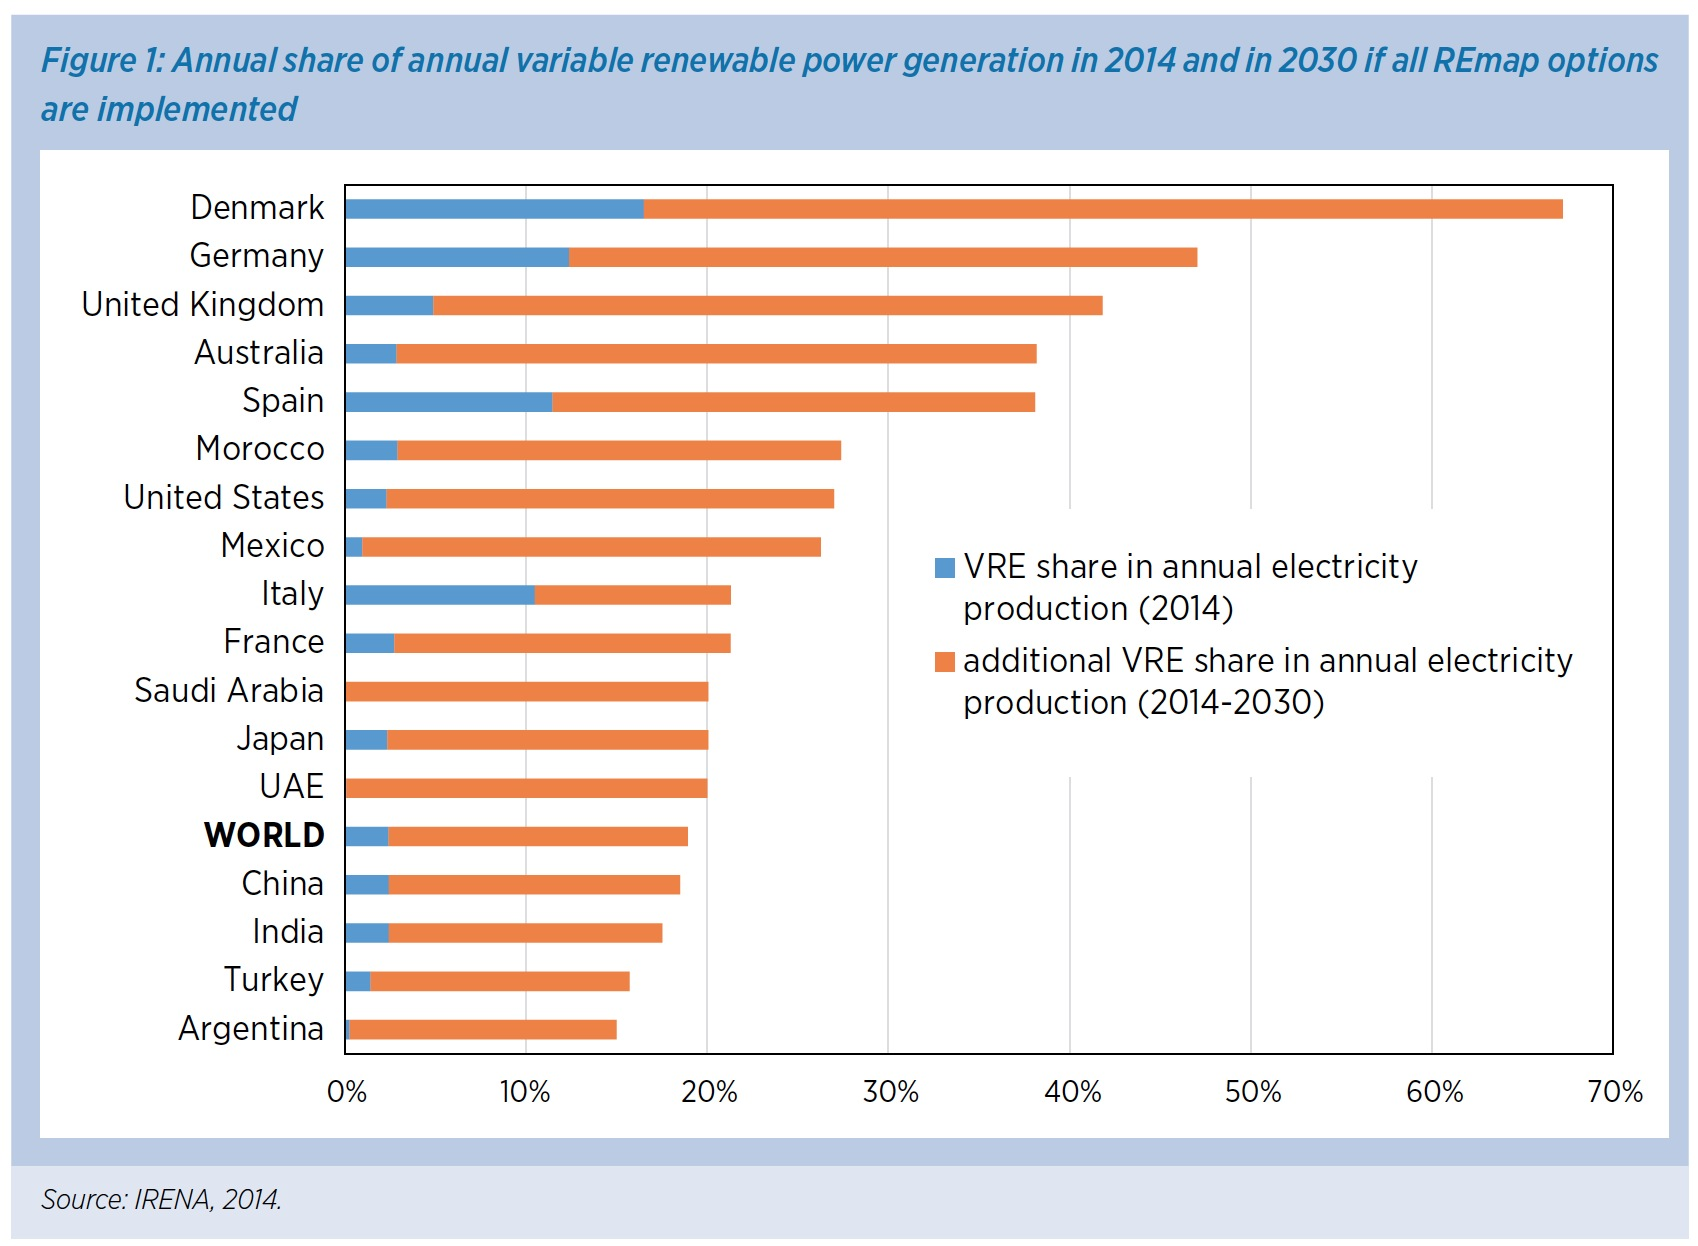 Figure 1: Annual share of annual variable renewable power generation in 2014 and in 2030 if all REmap options are implemented